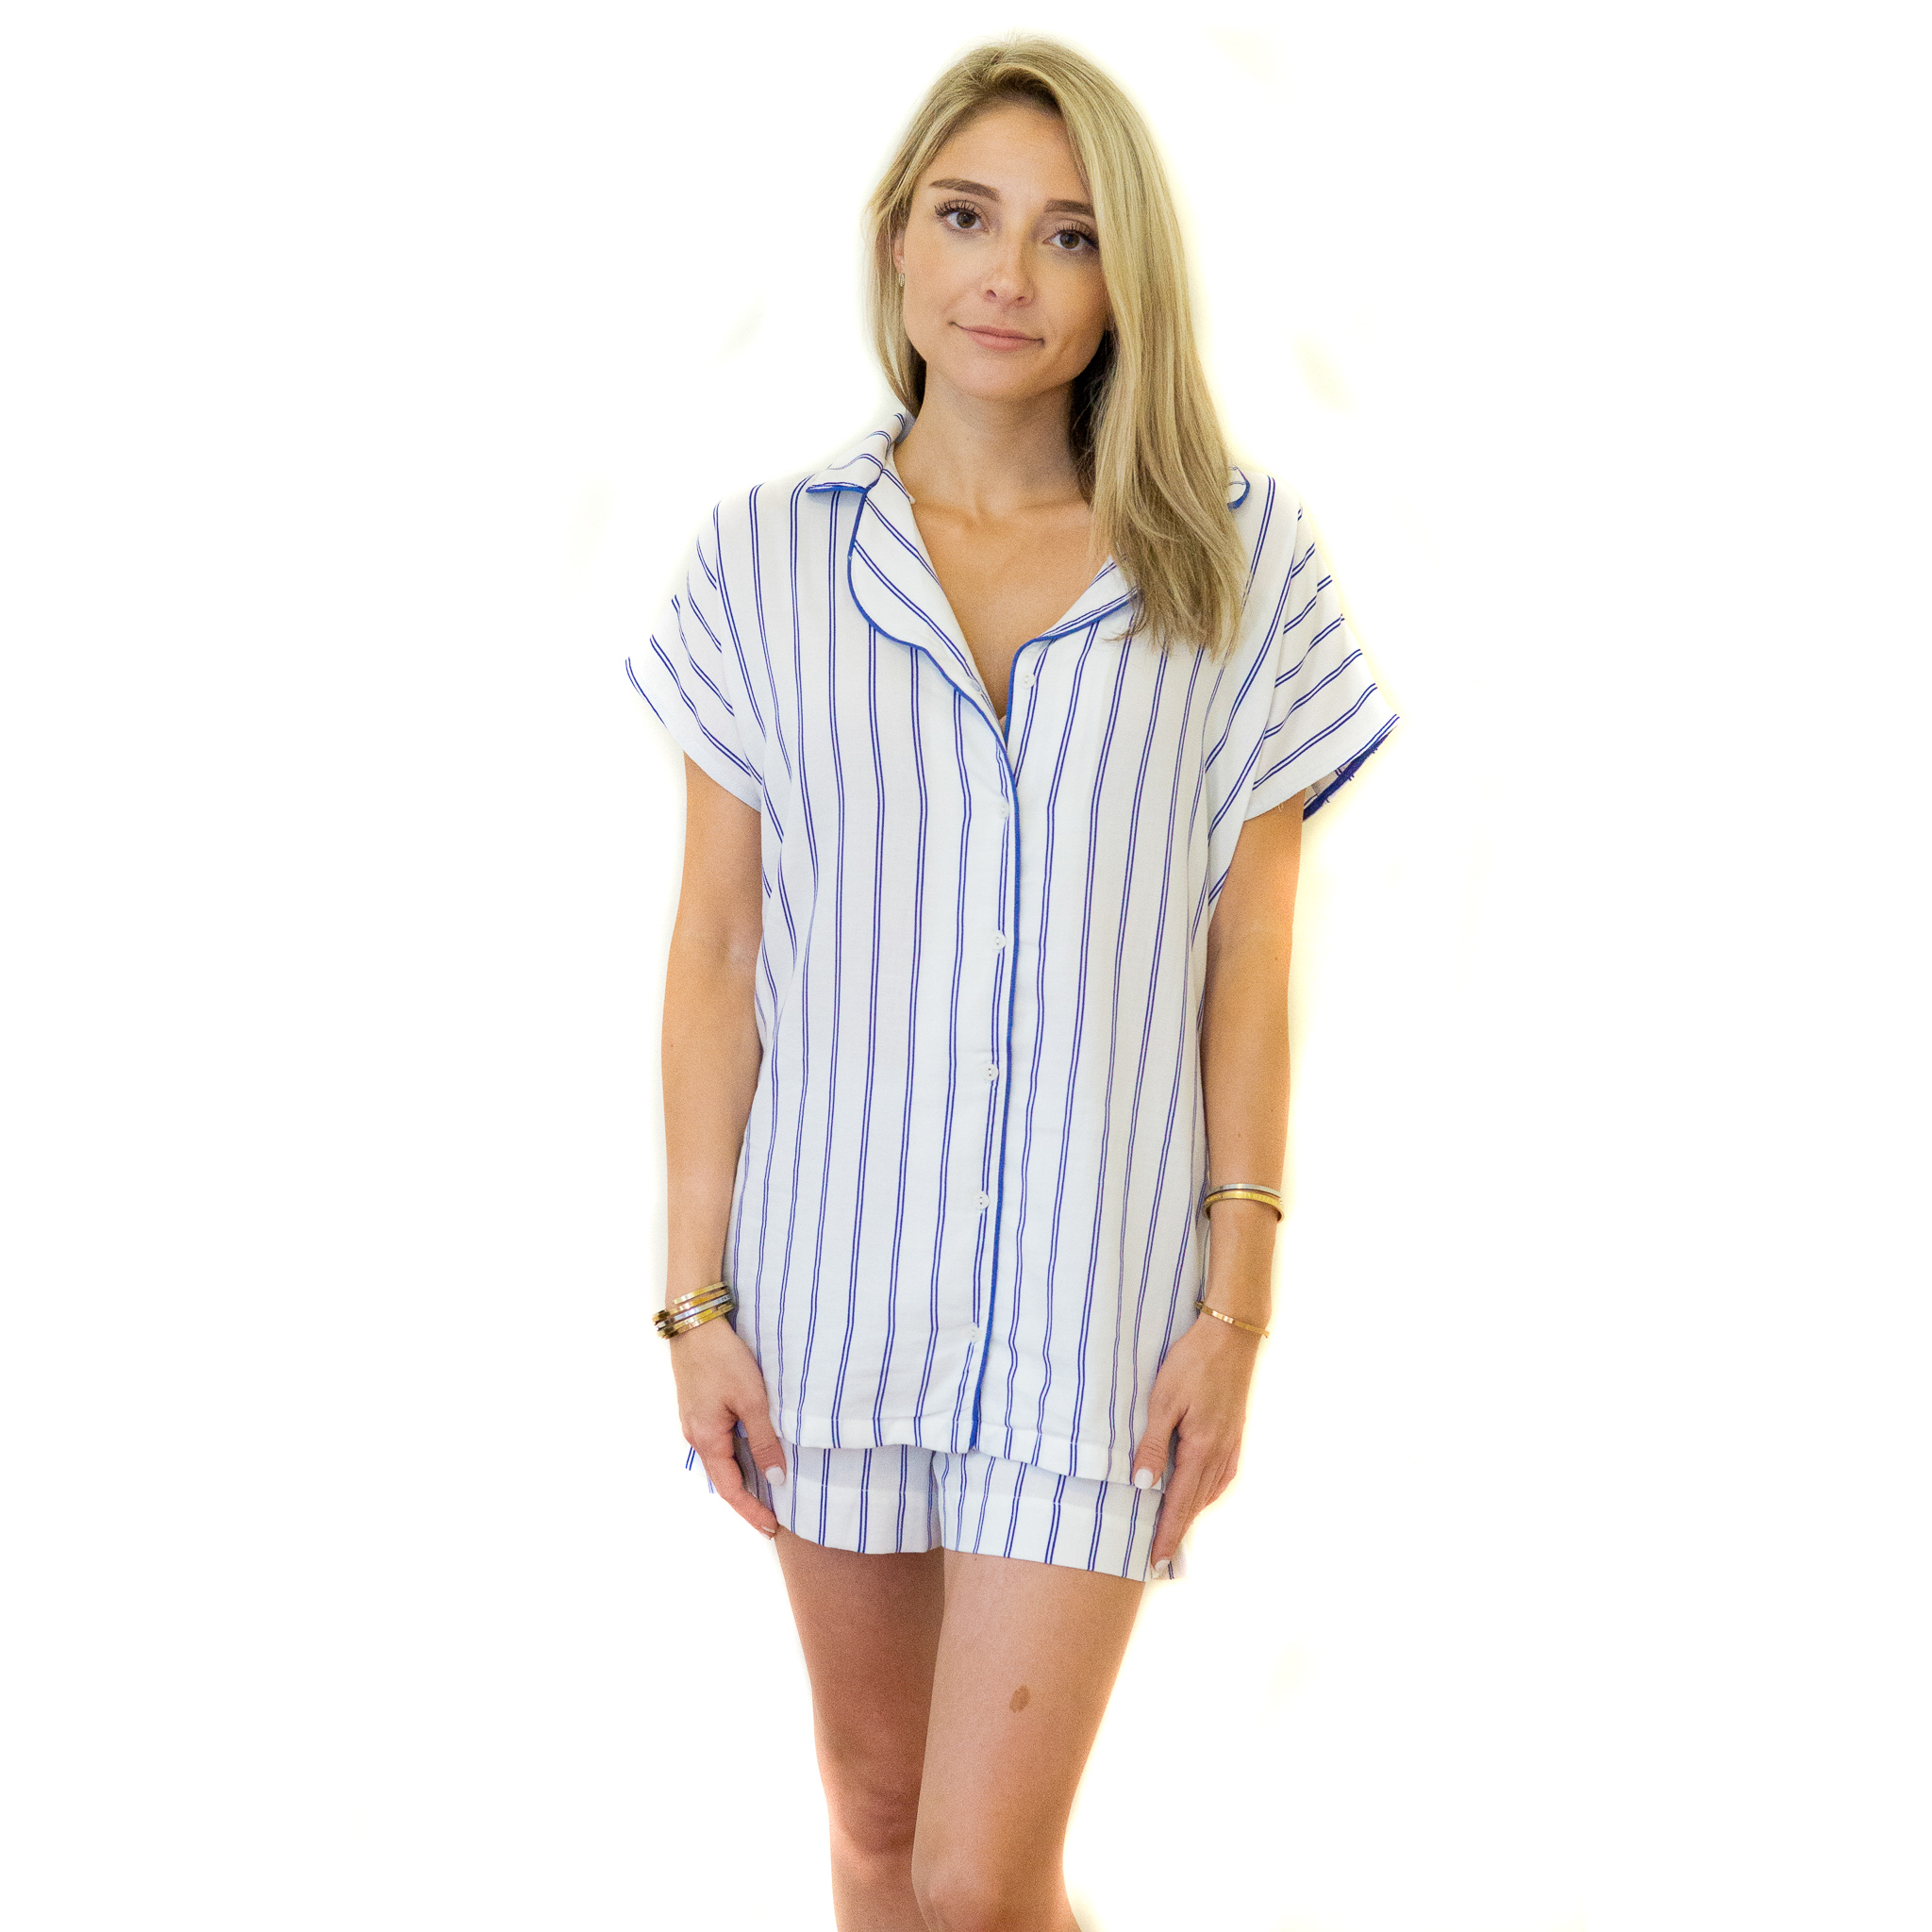 MOOD Pajamas Striped PJ Set